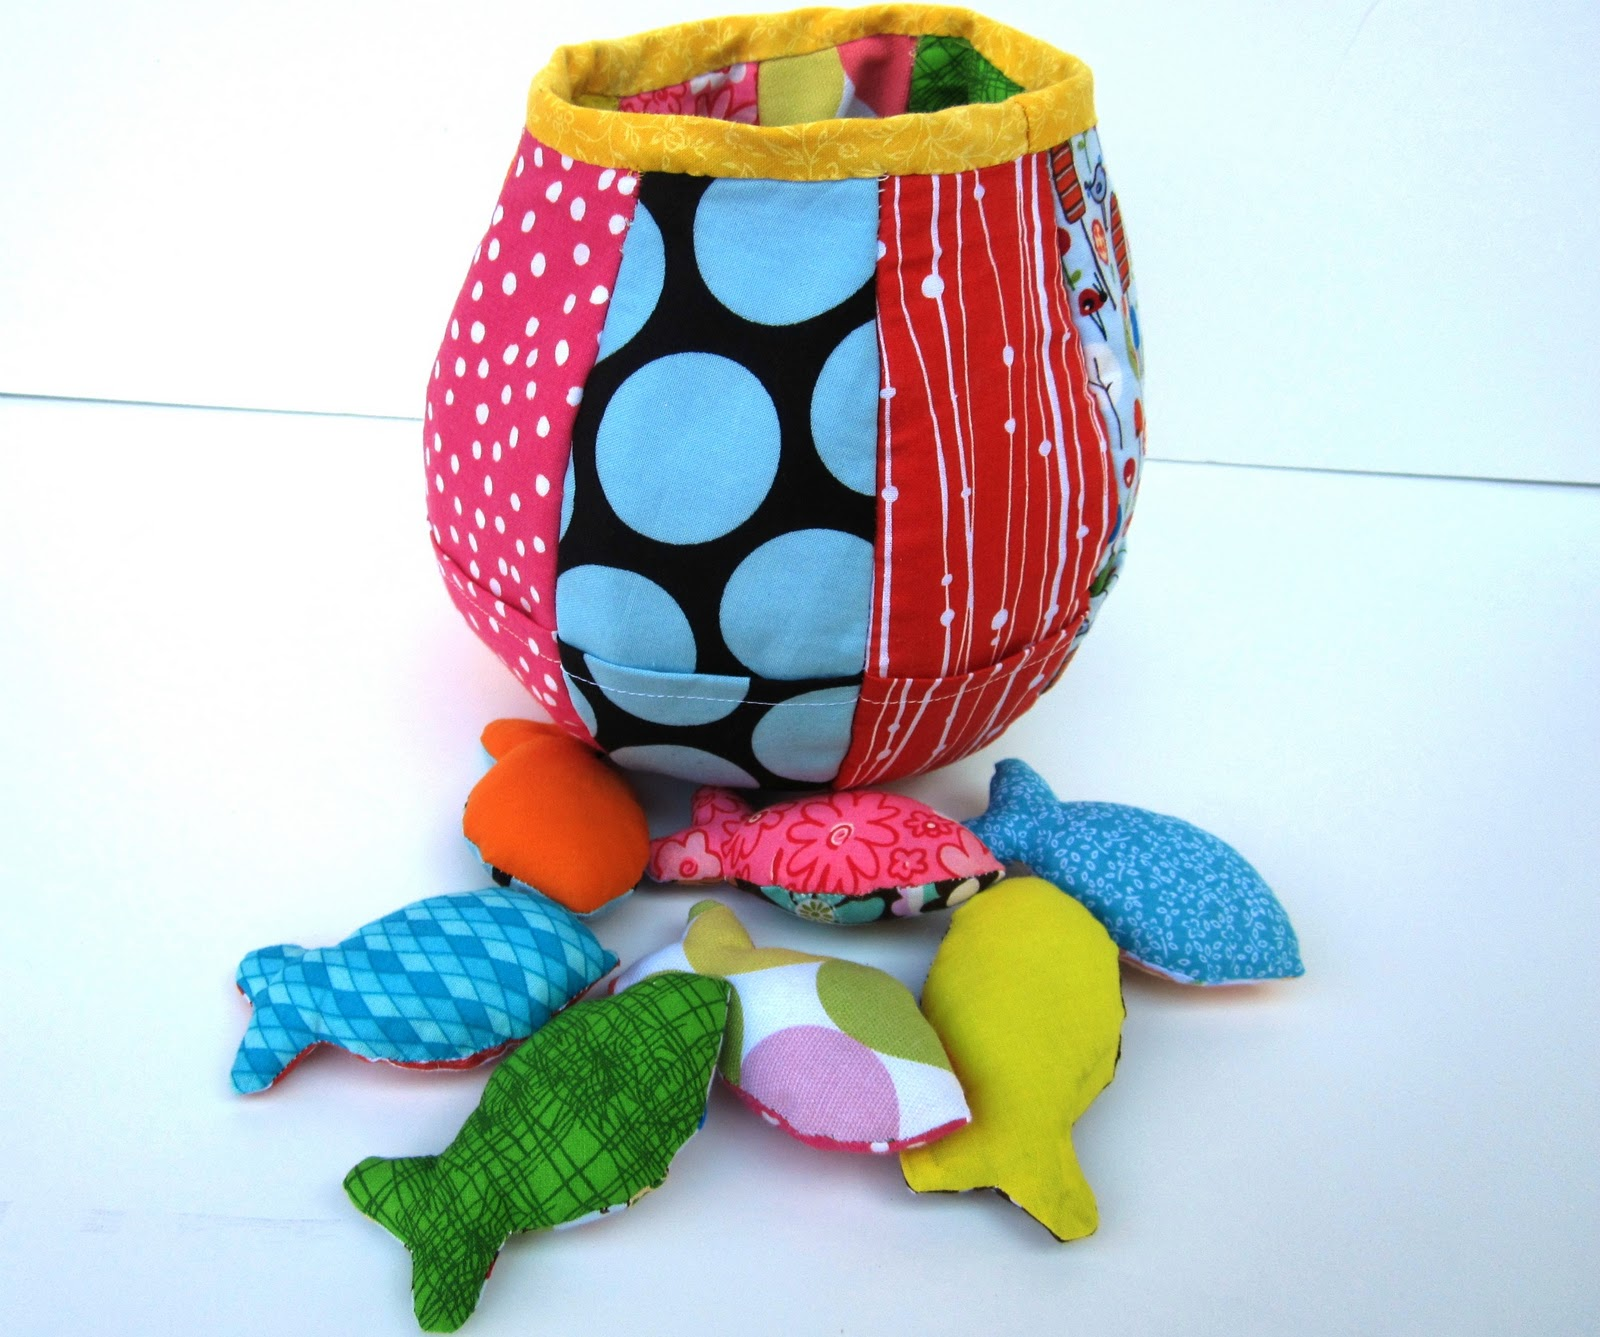 Celestial\'s Creations: Fish Bowl Matching Game